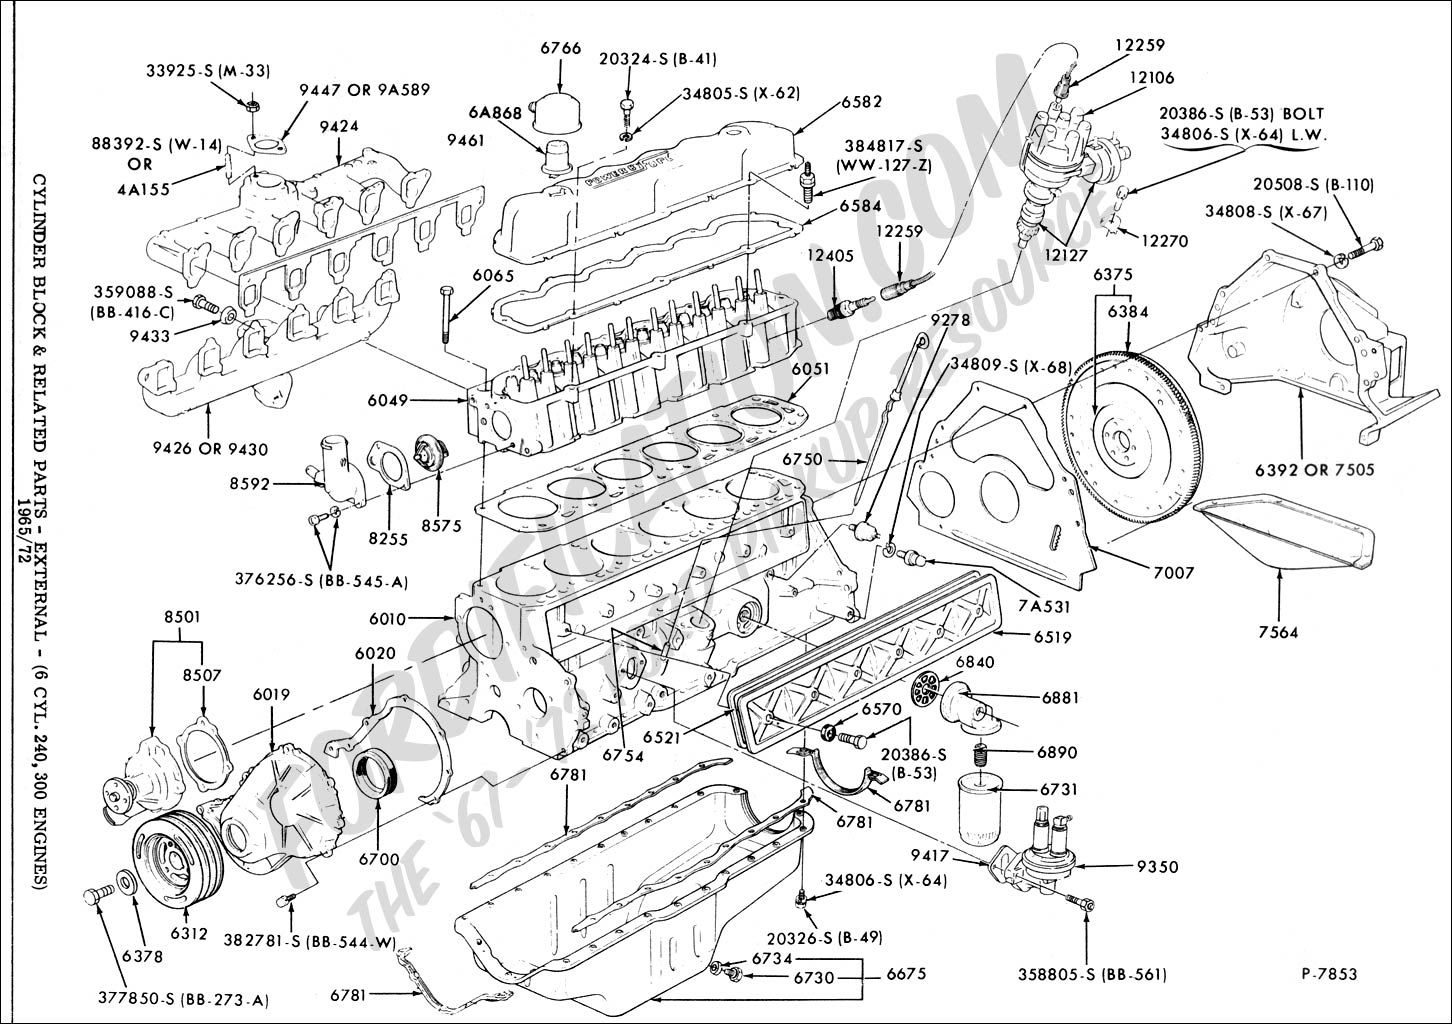 ford straight 6 engine diagram | bb | ford trucks, ford ... 1996 ford mustang engine diagram